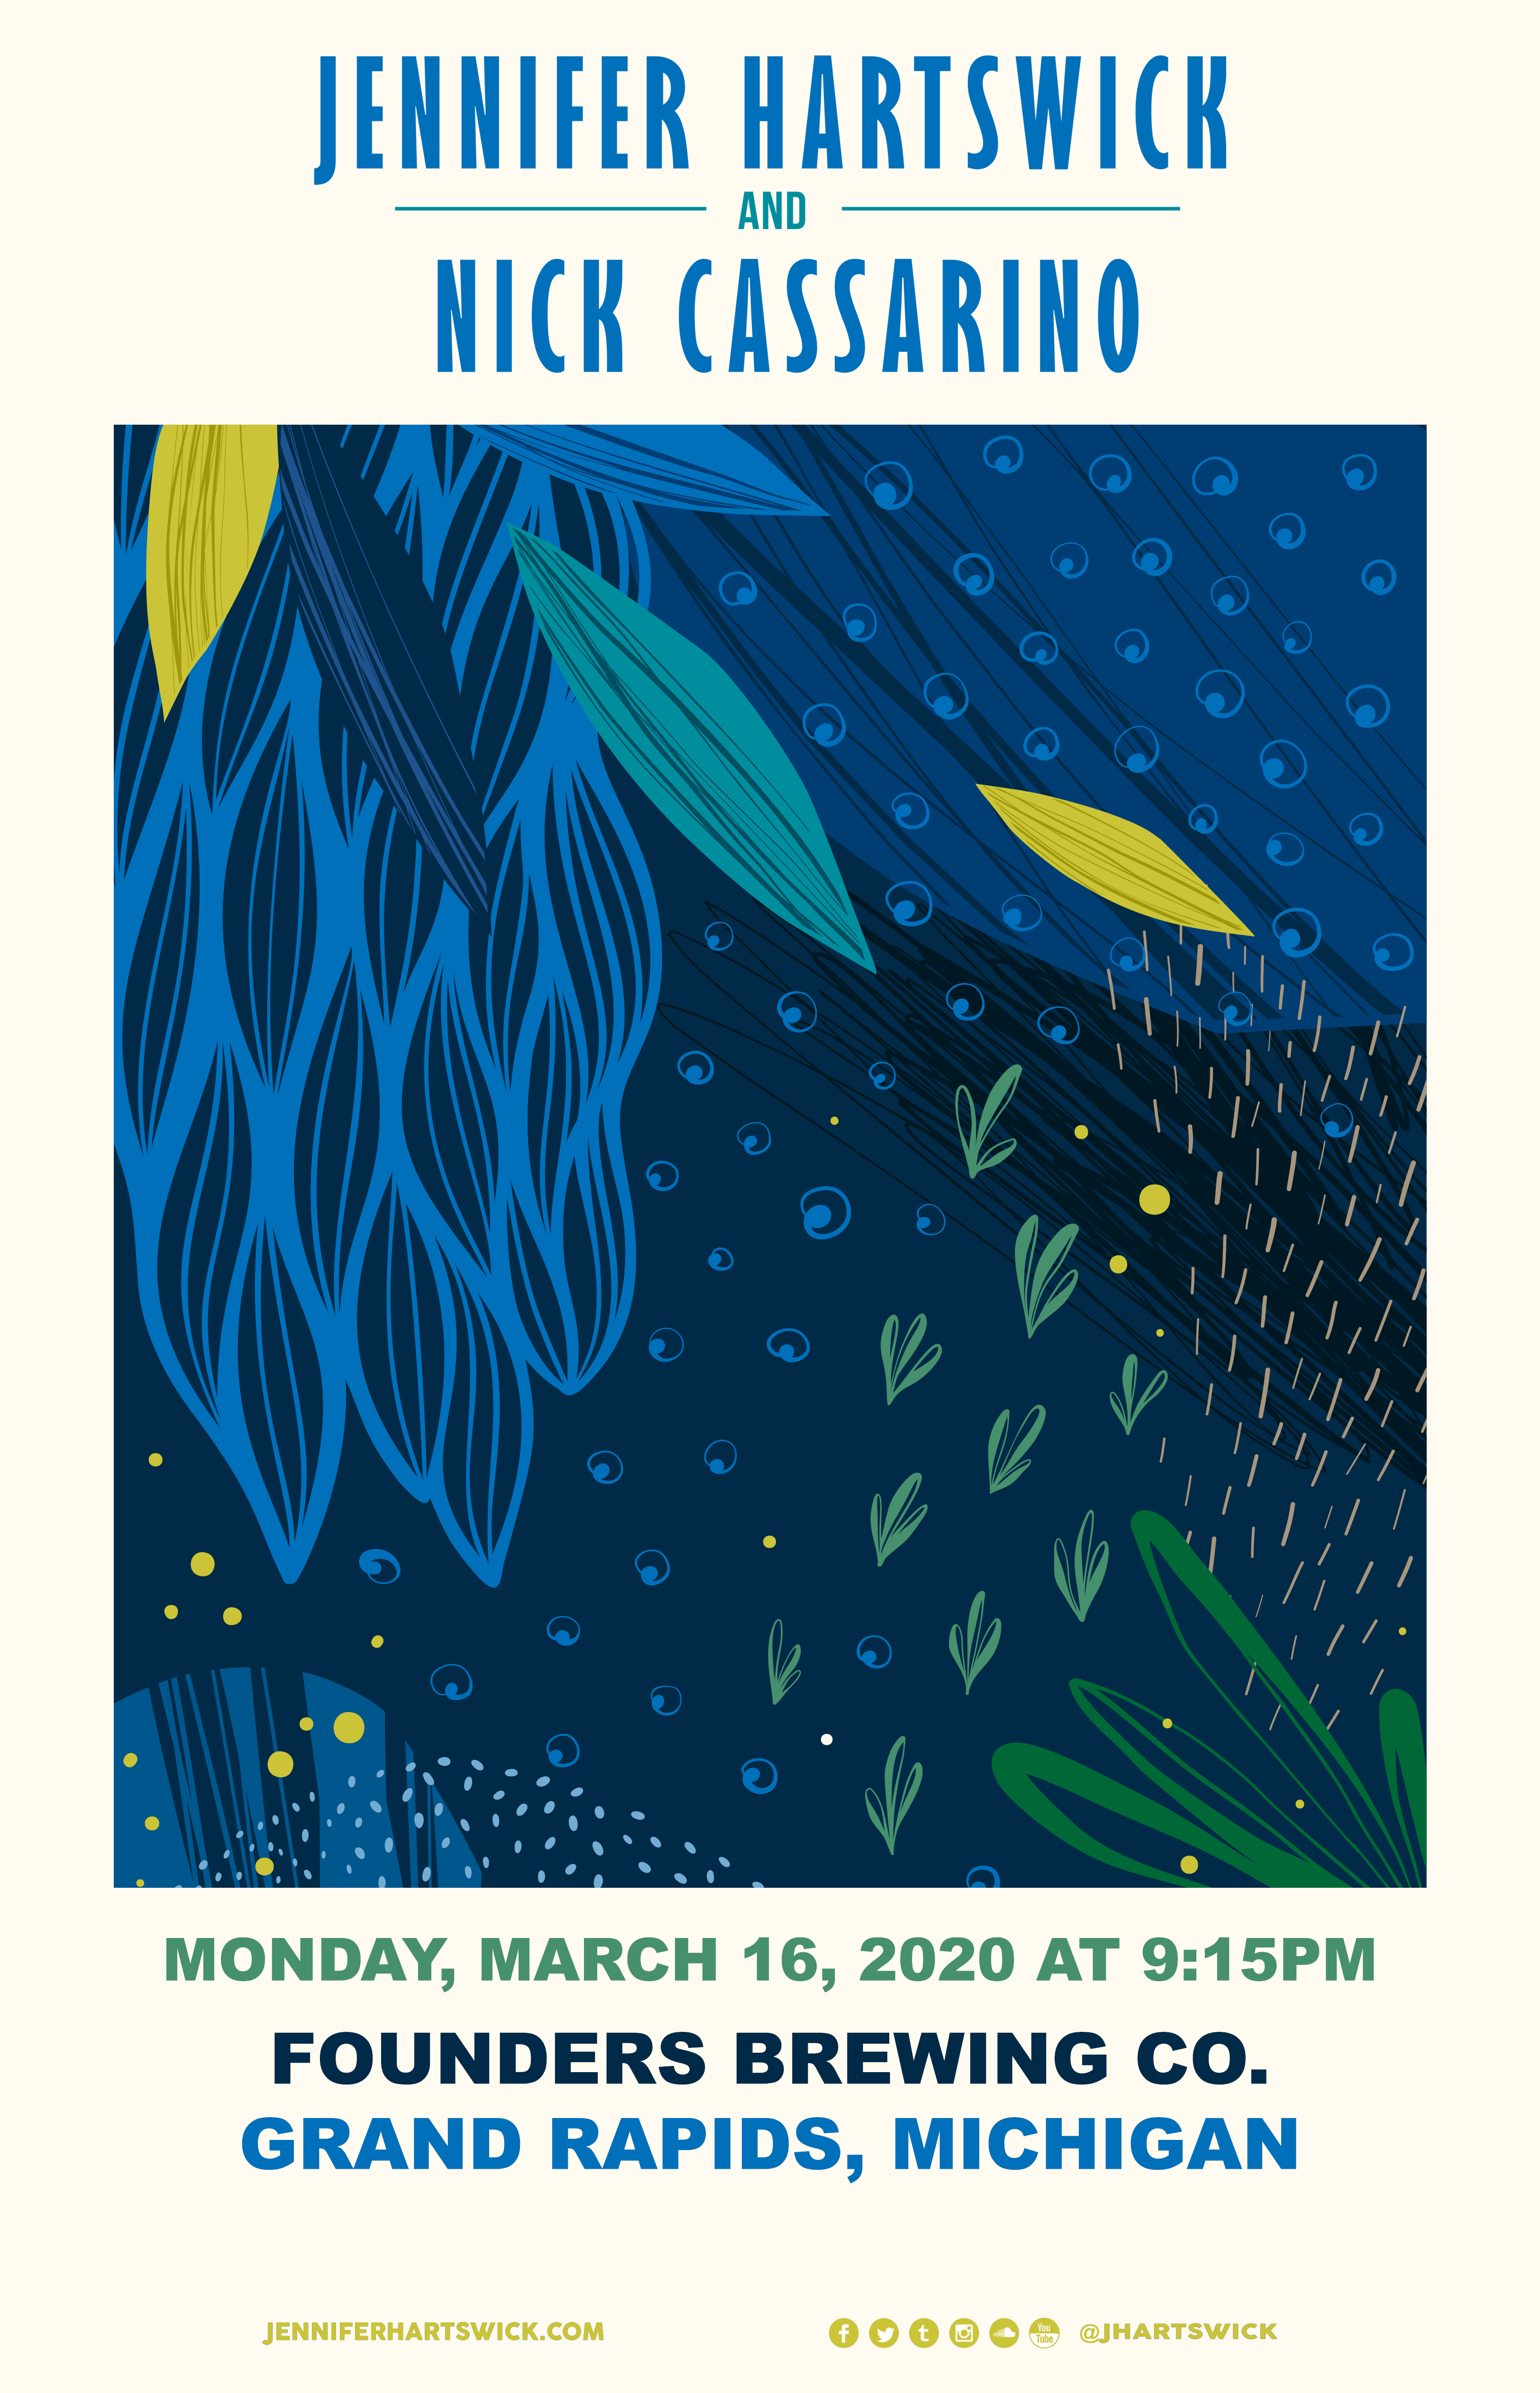 Jennifer Hartswick and Nick Cassarino event poster hosted by Founders Brewing Co.